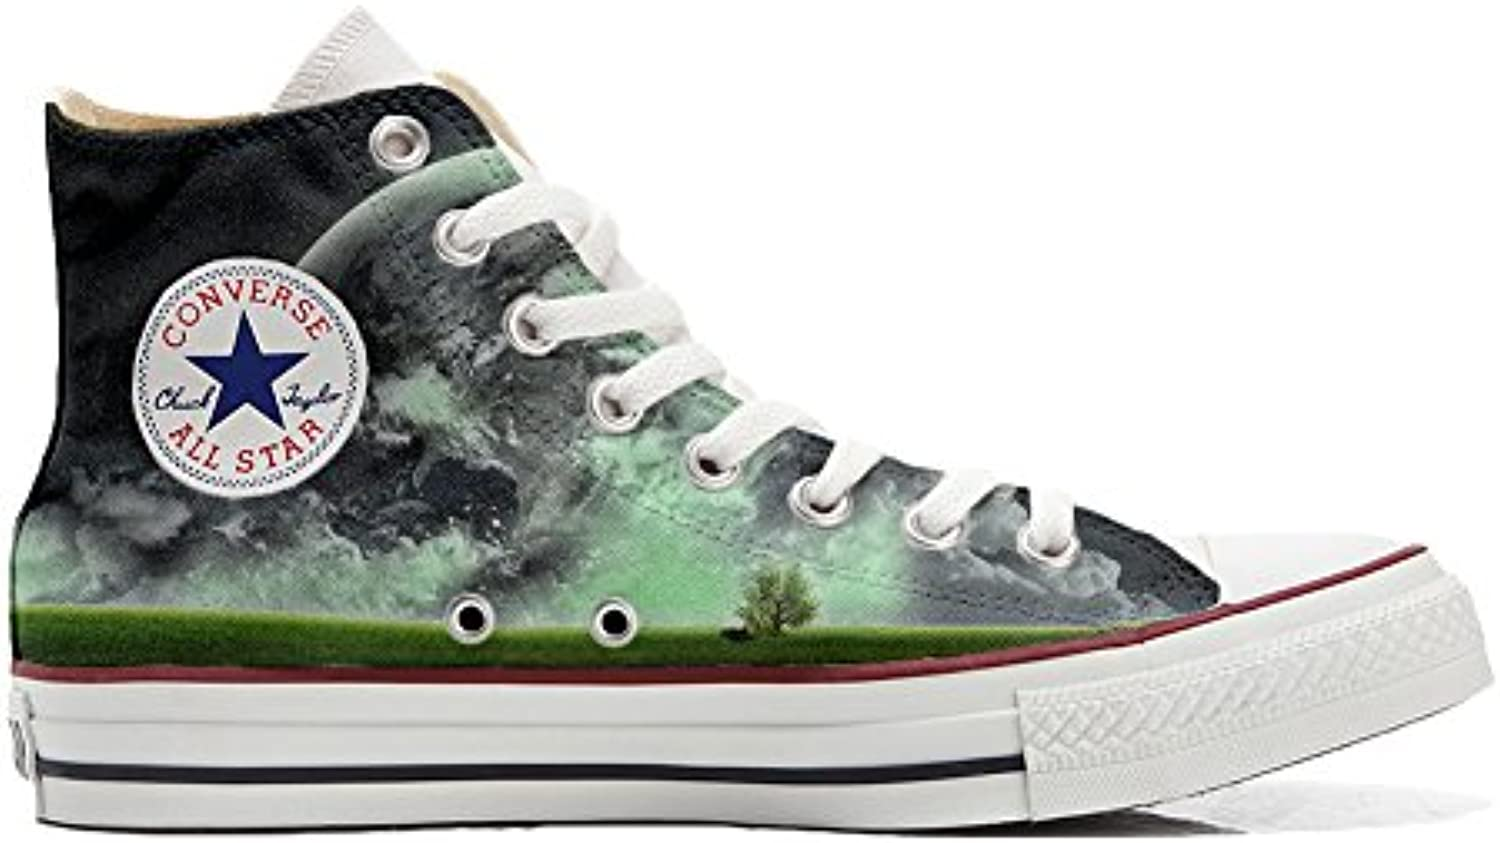 Converse All Star Customized - Zapatos Personalizados (Producto Artesano) con el Mundo  -